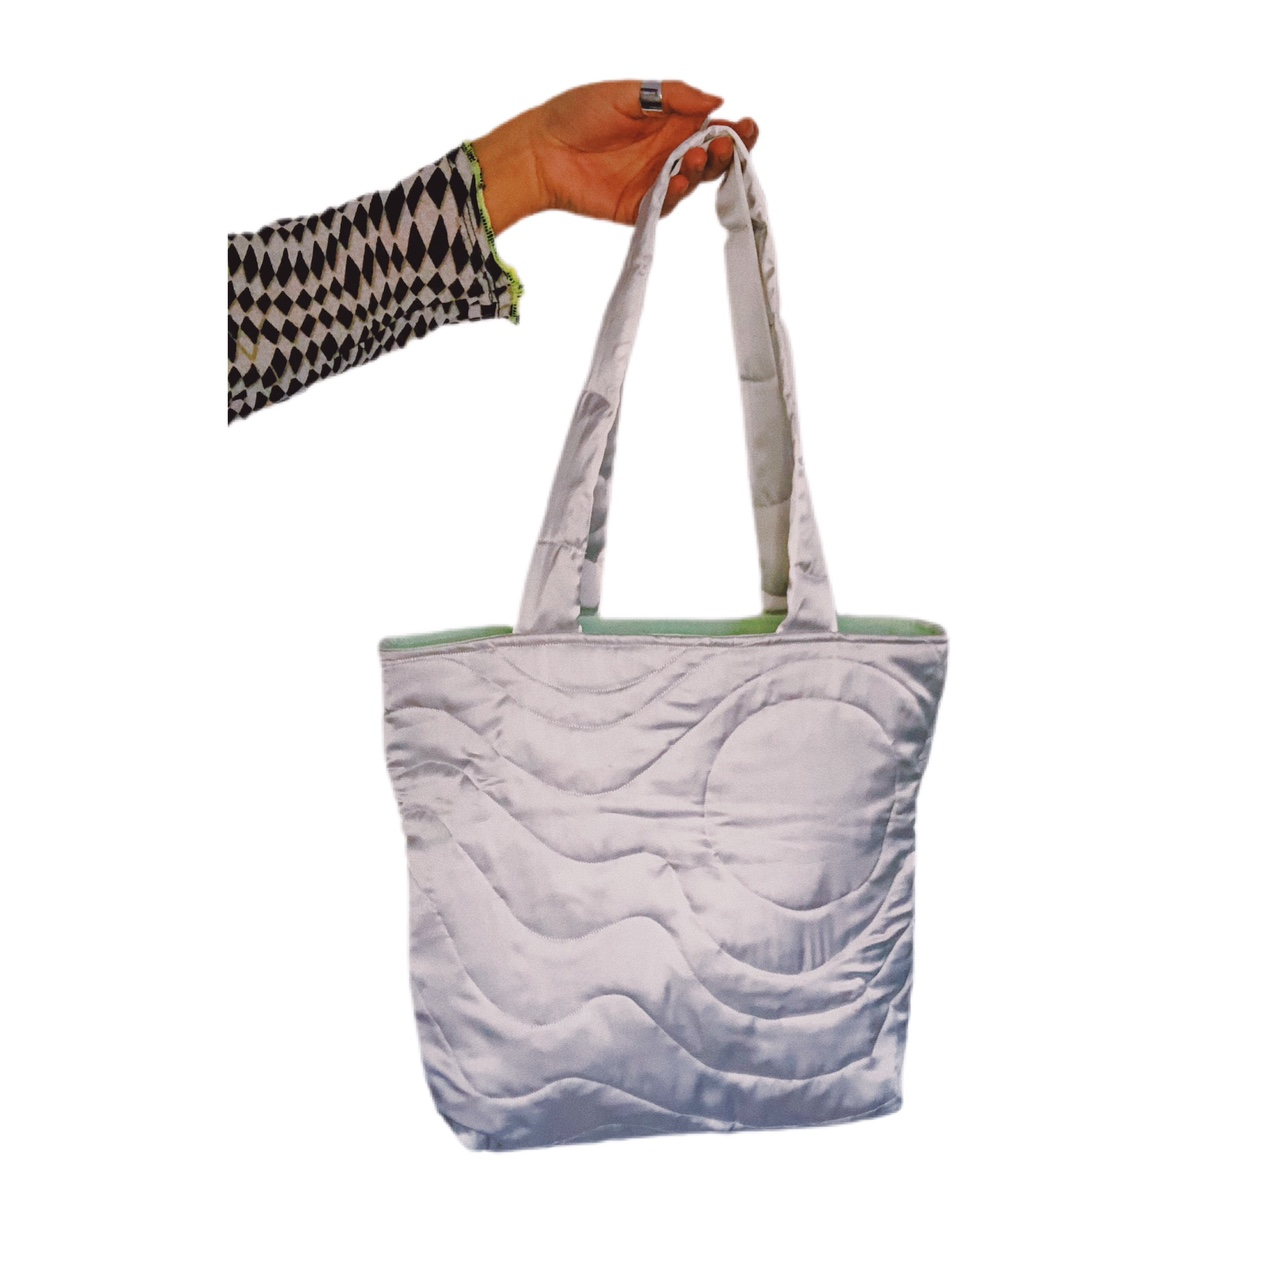 Product Image 1 - OYSTER COLLECTION 💫  The Contour Tote